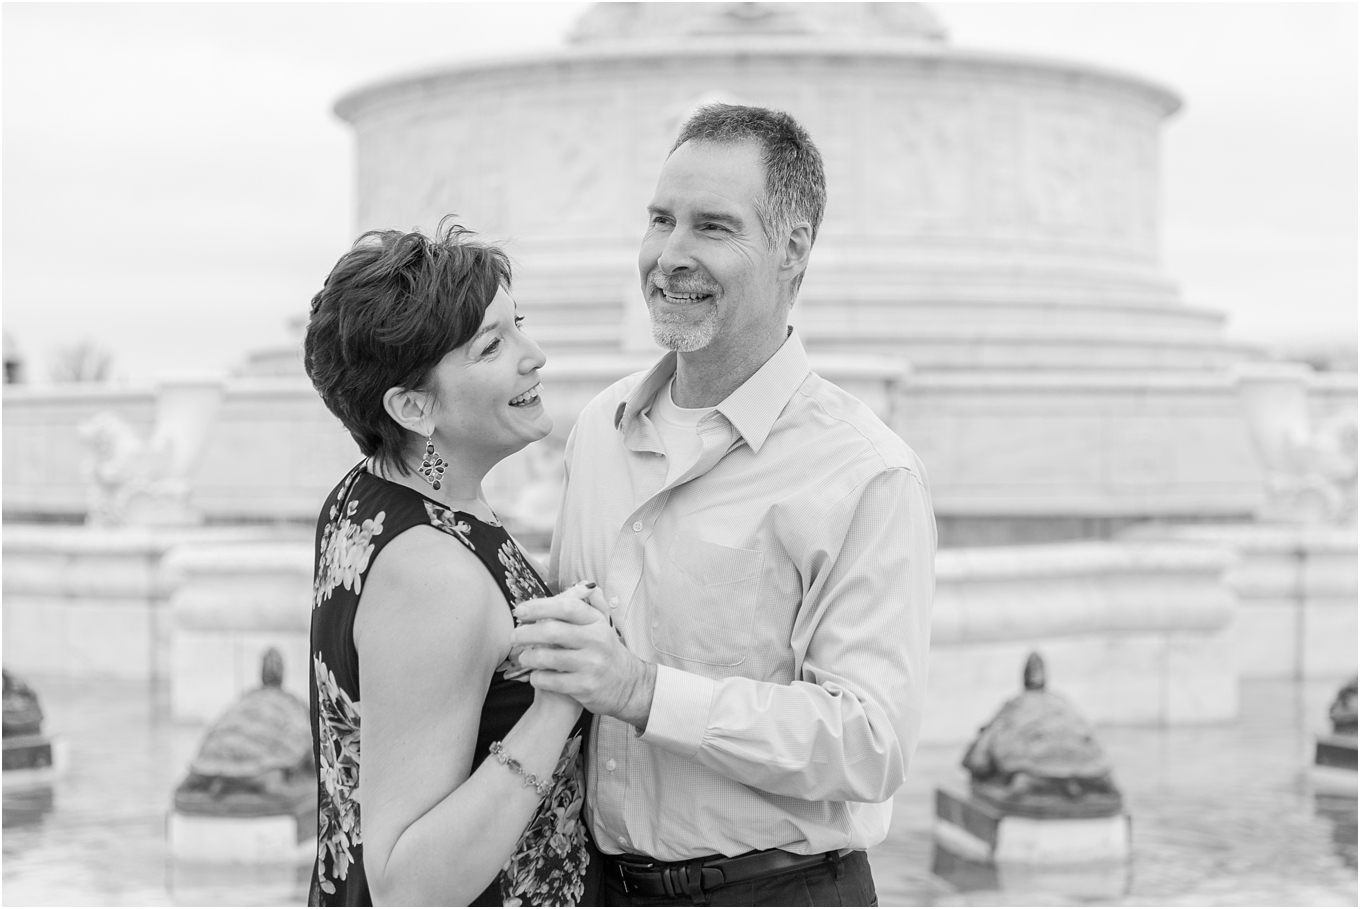 downtown-detroit-engagement-photos-on-belle-isle-by-courtney-carolyn-photography_0003.jpg